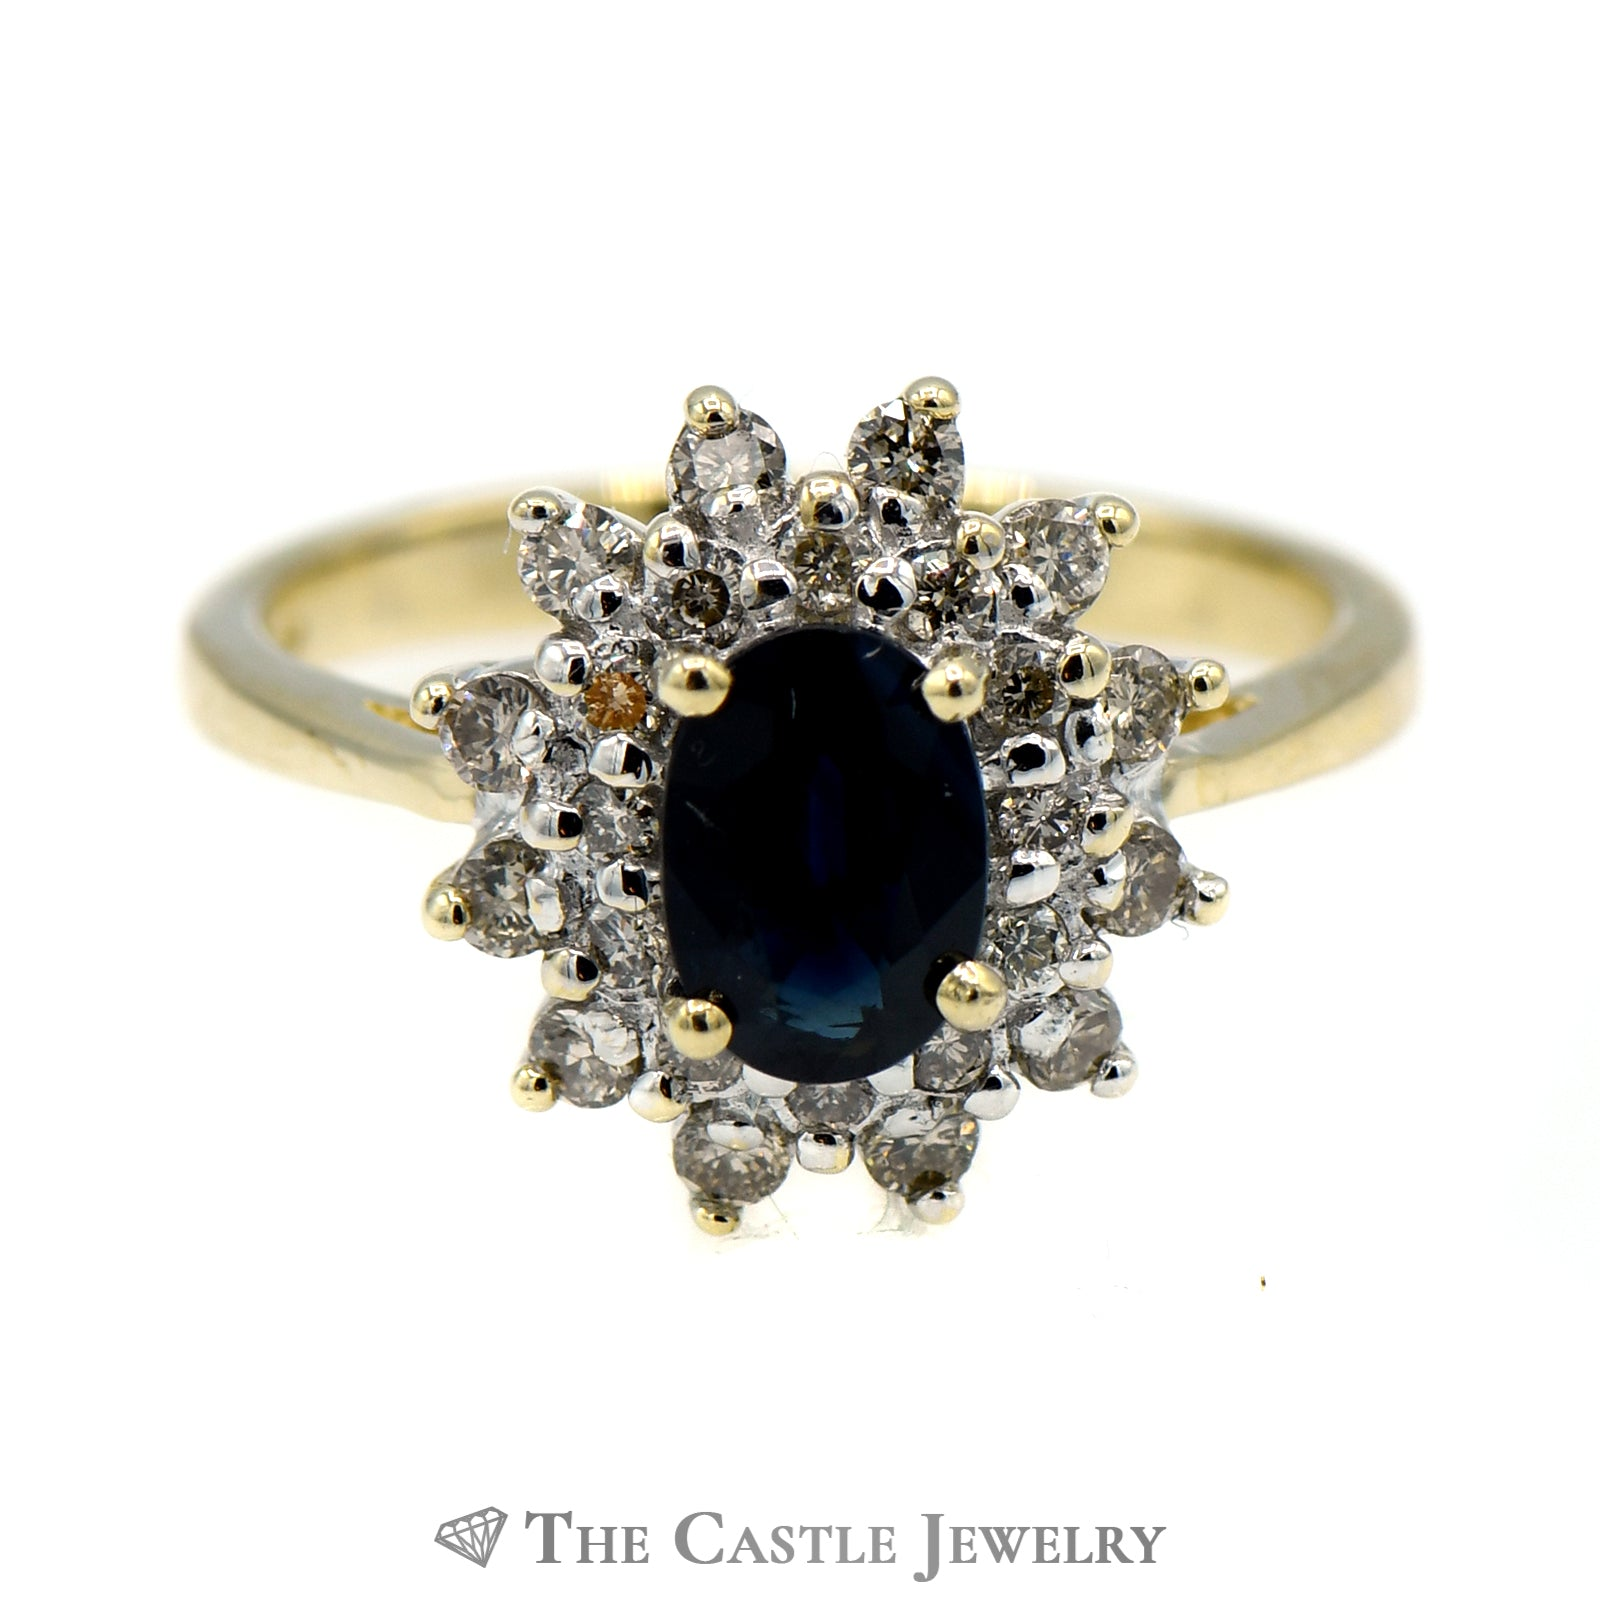 Dark Blue Sapphire Ring Surrounded by Layered Diamond Halo